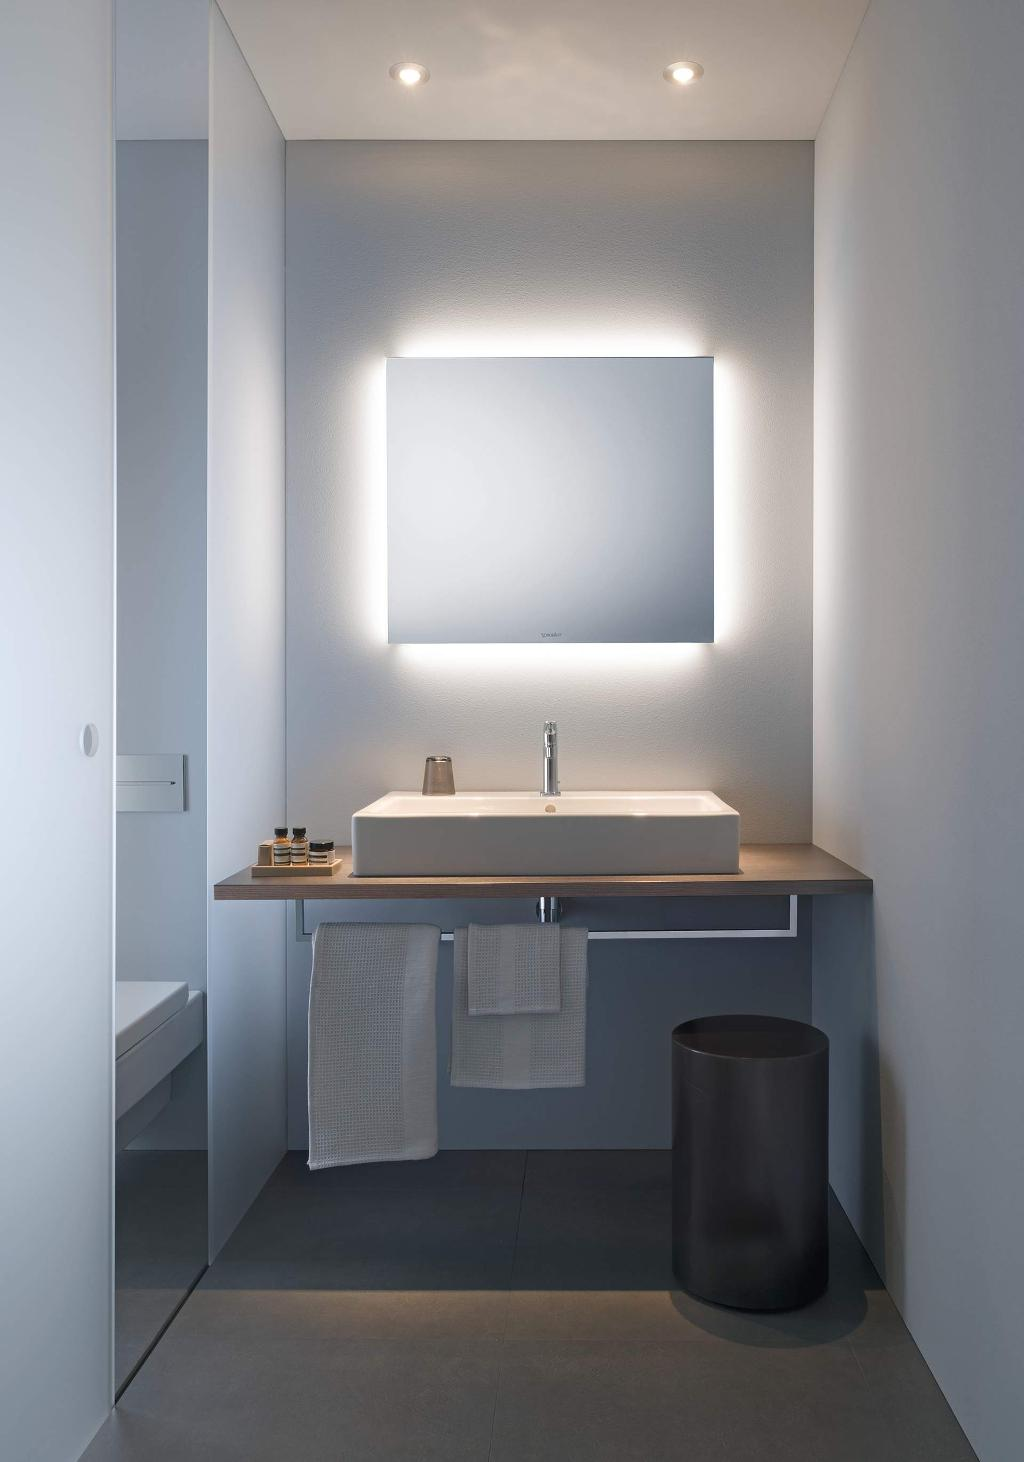 Light and Mirror: Design bathroom mirrors | Duravit on wooden bathroom shelves with towel bar, wooden bathroom caddy, wooden bathroom sign, wooden bathroom stand, wooden bathroom hooks, wooden bathroom vanities, wooden bathroom shelving unit, wooden bathroom ledge, wooden bathroom sink, wooden bathroom door, wooden bathroom light, wooden bathroom fixtures, wooden bathroom stool, wooden bathroom cabinet, wooden bathroom decor, wooden toilet, wooden bathroom table, wooden bathroom counter, wooden bathroom wall, wooden bathroom floor,